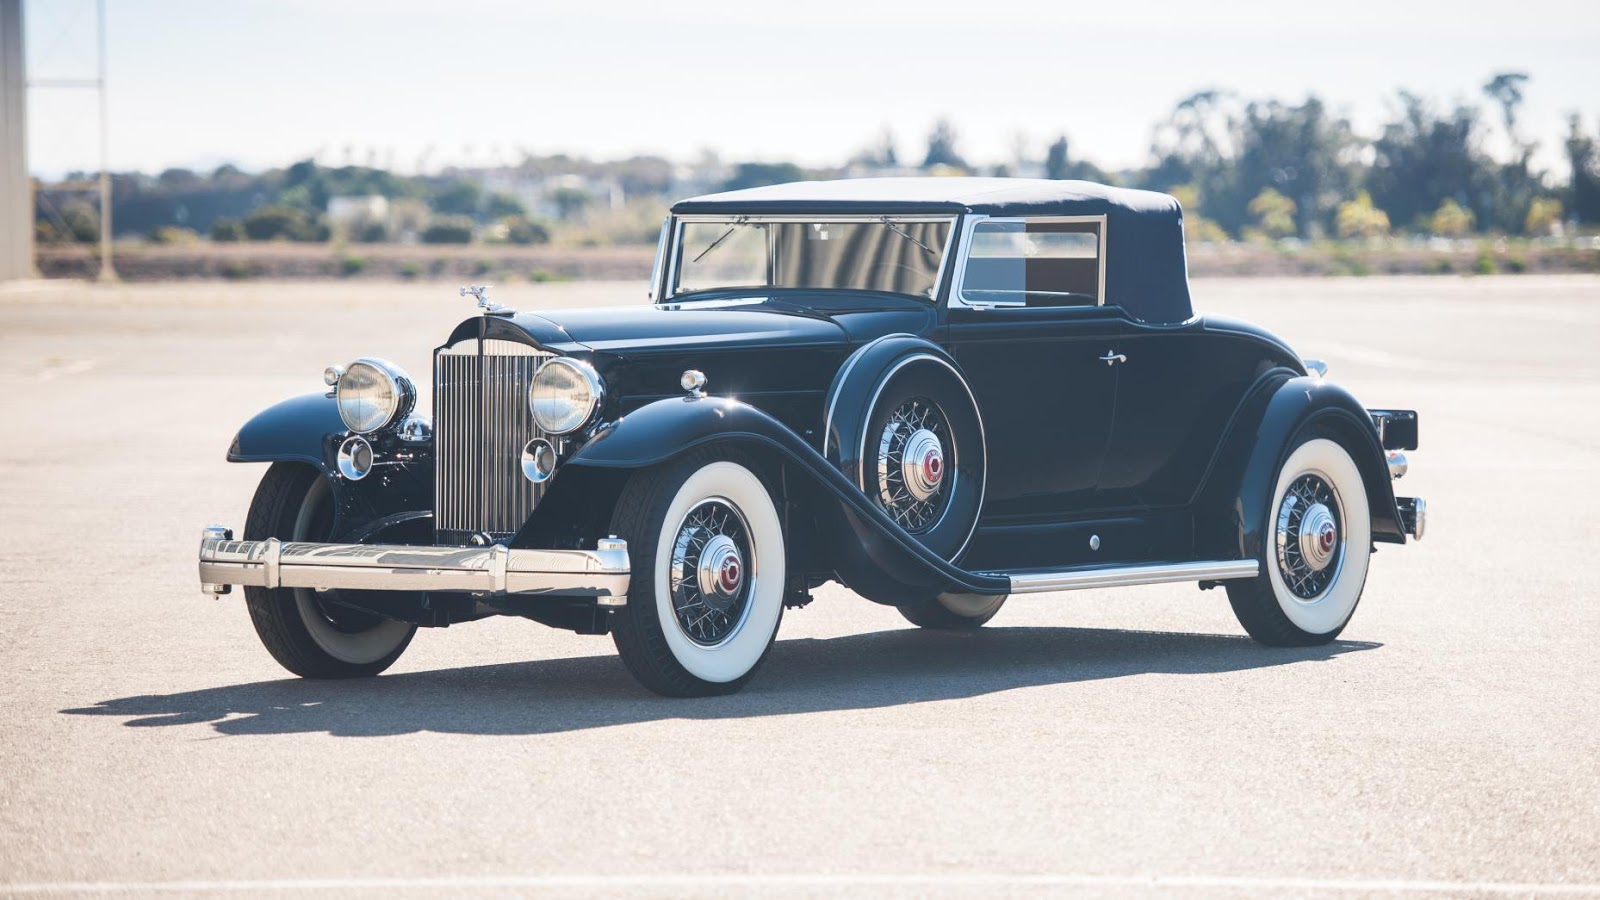 1932 Packard Twin Six Coupe Roadster: $1,210,000